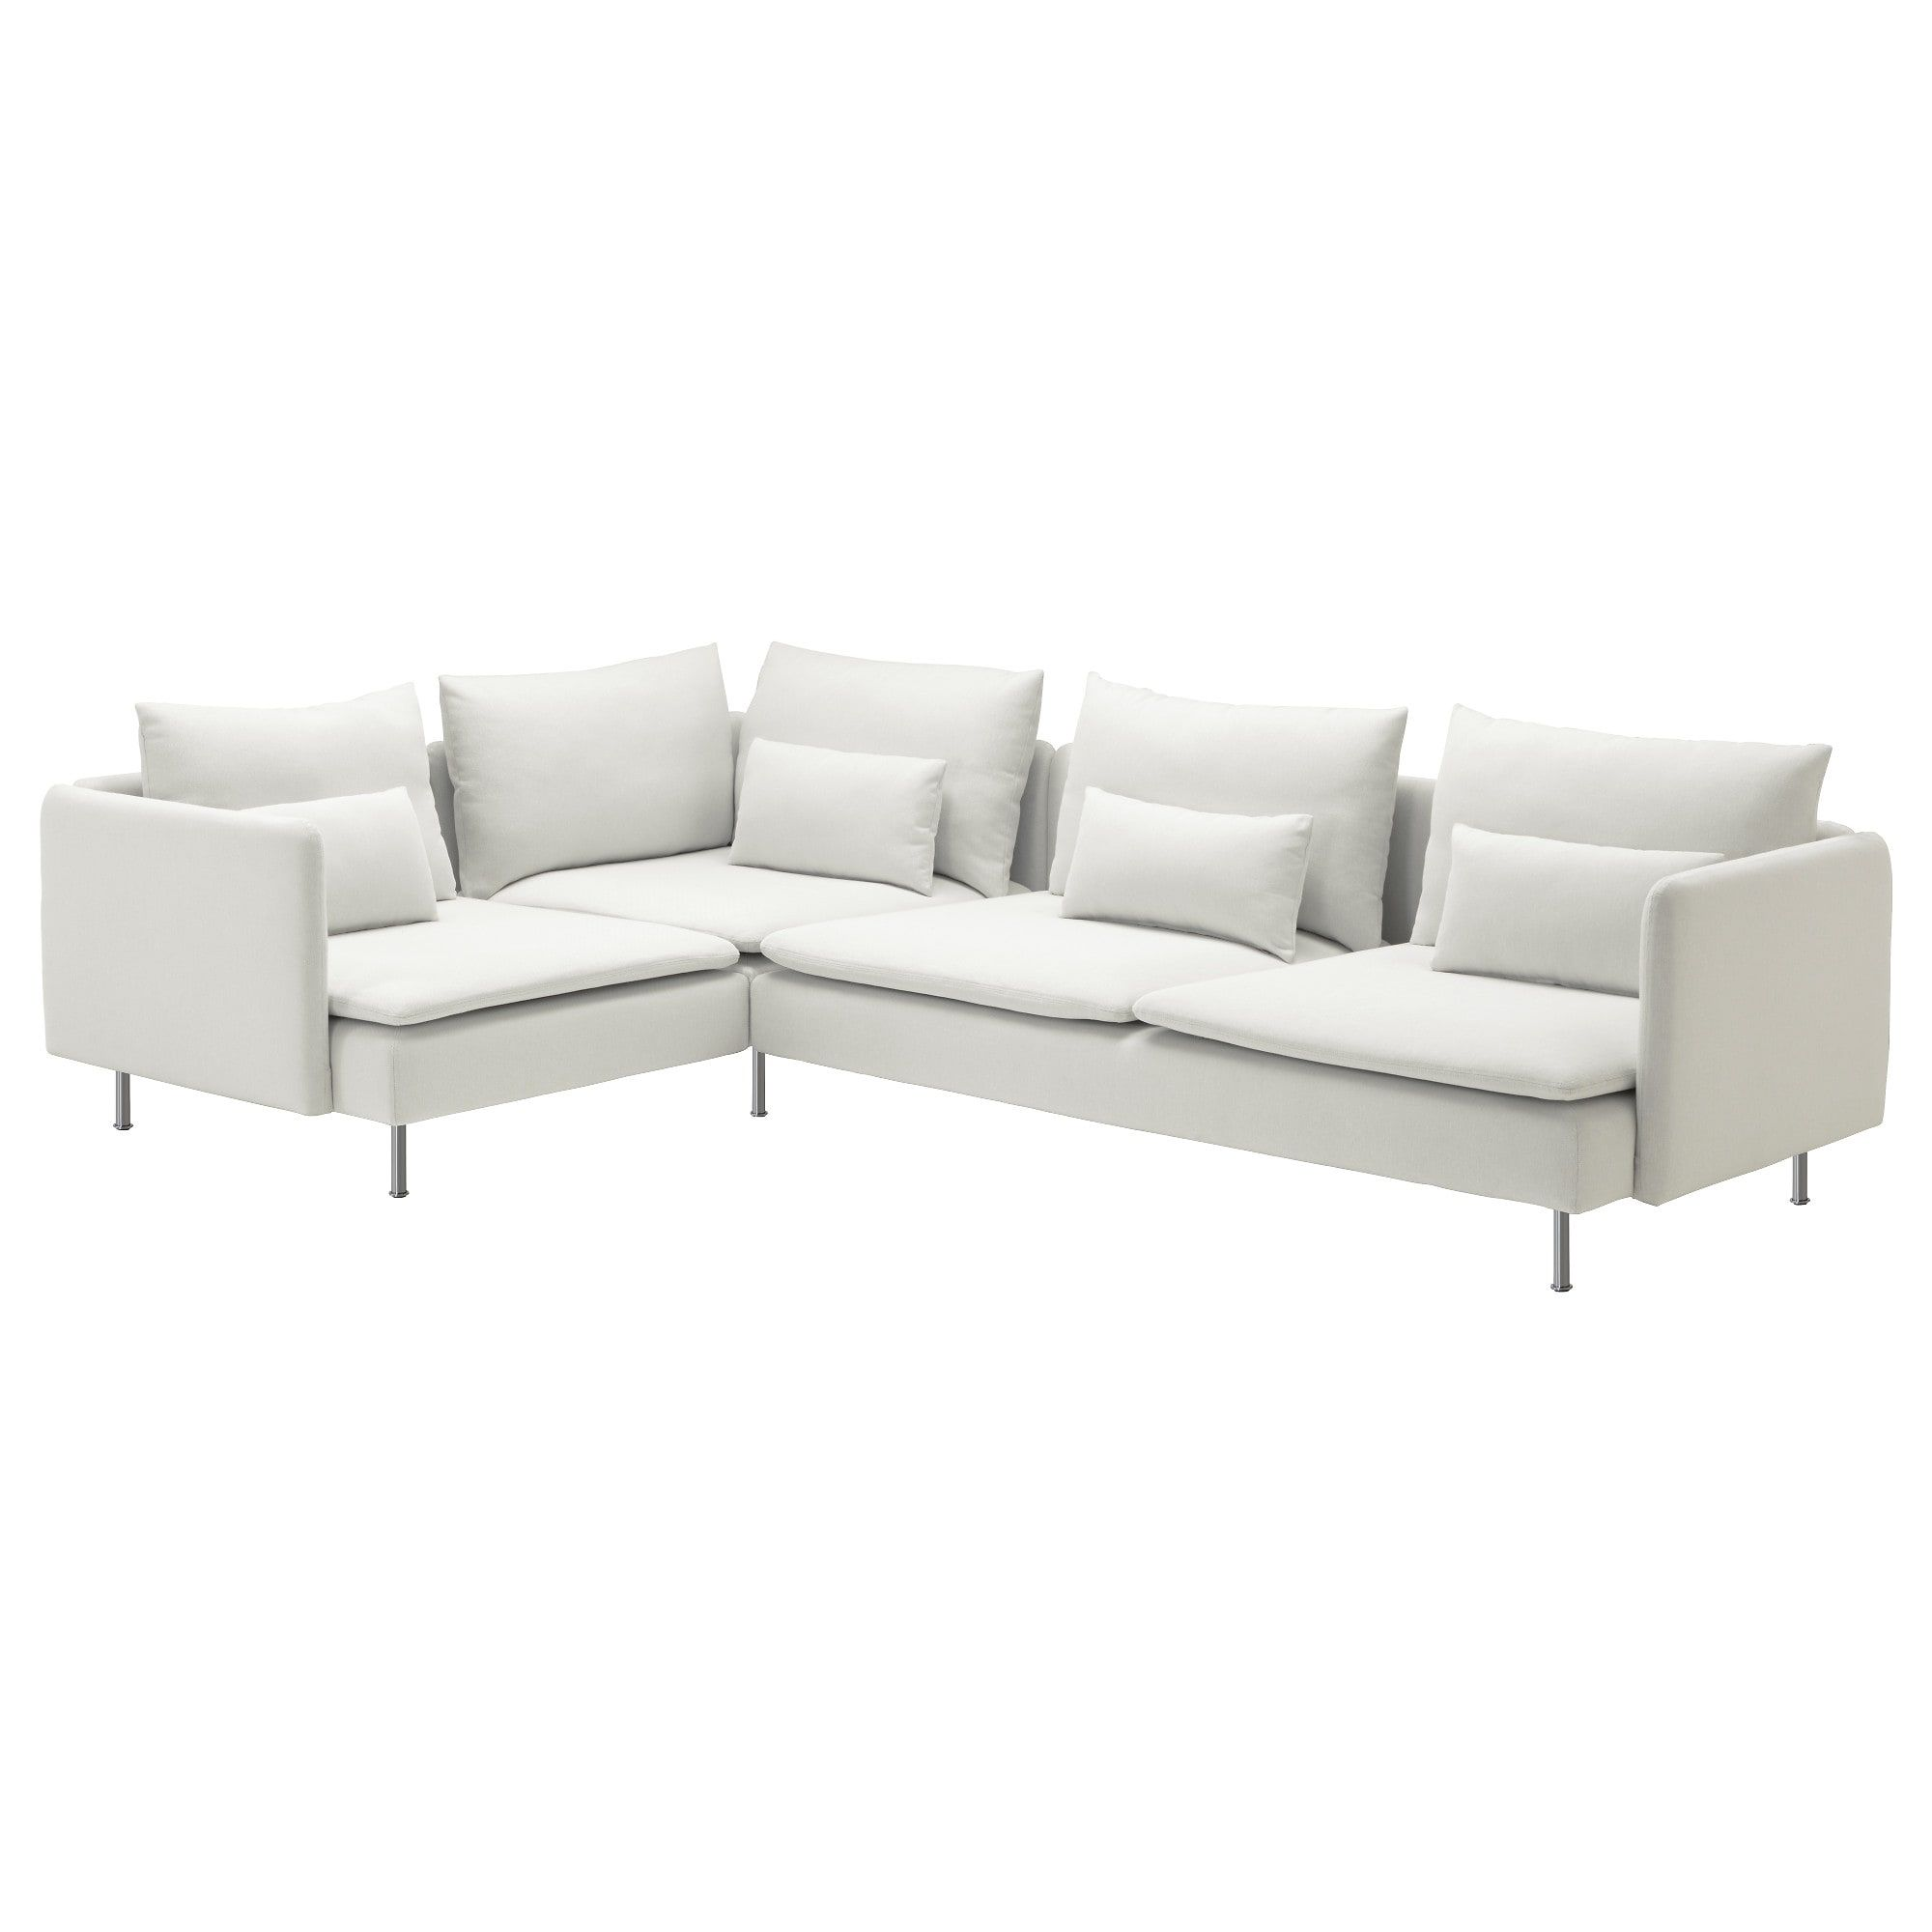 Best Us Furniture And Home Furnishings With Images Cheap 400 x 300